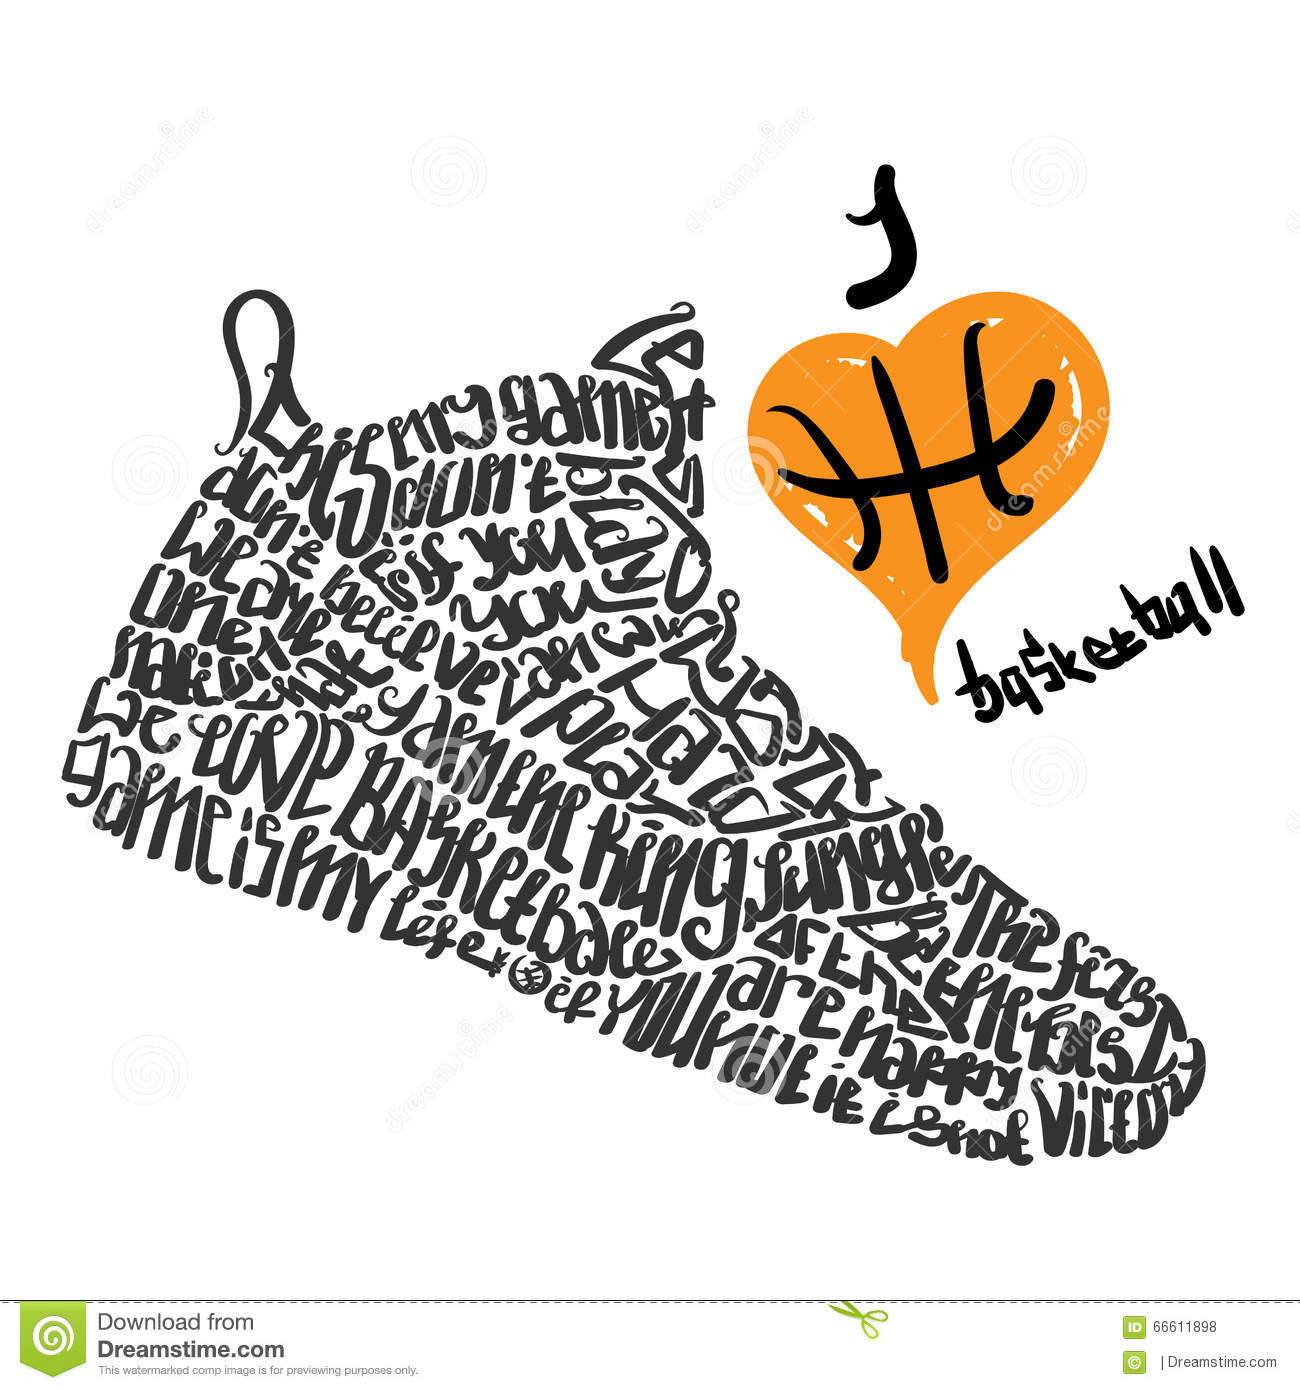 i love basketball cartoon vector cartoondealer com 62569501 basketball clip art black and white free basketball clip art black and white heart